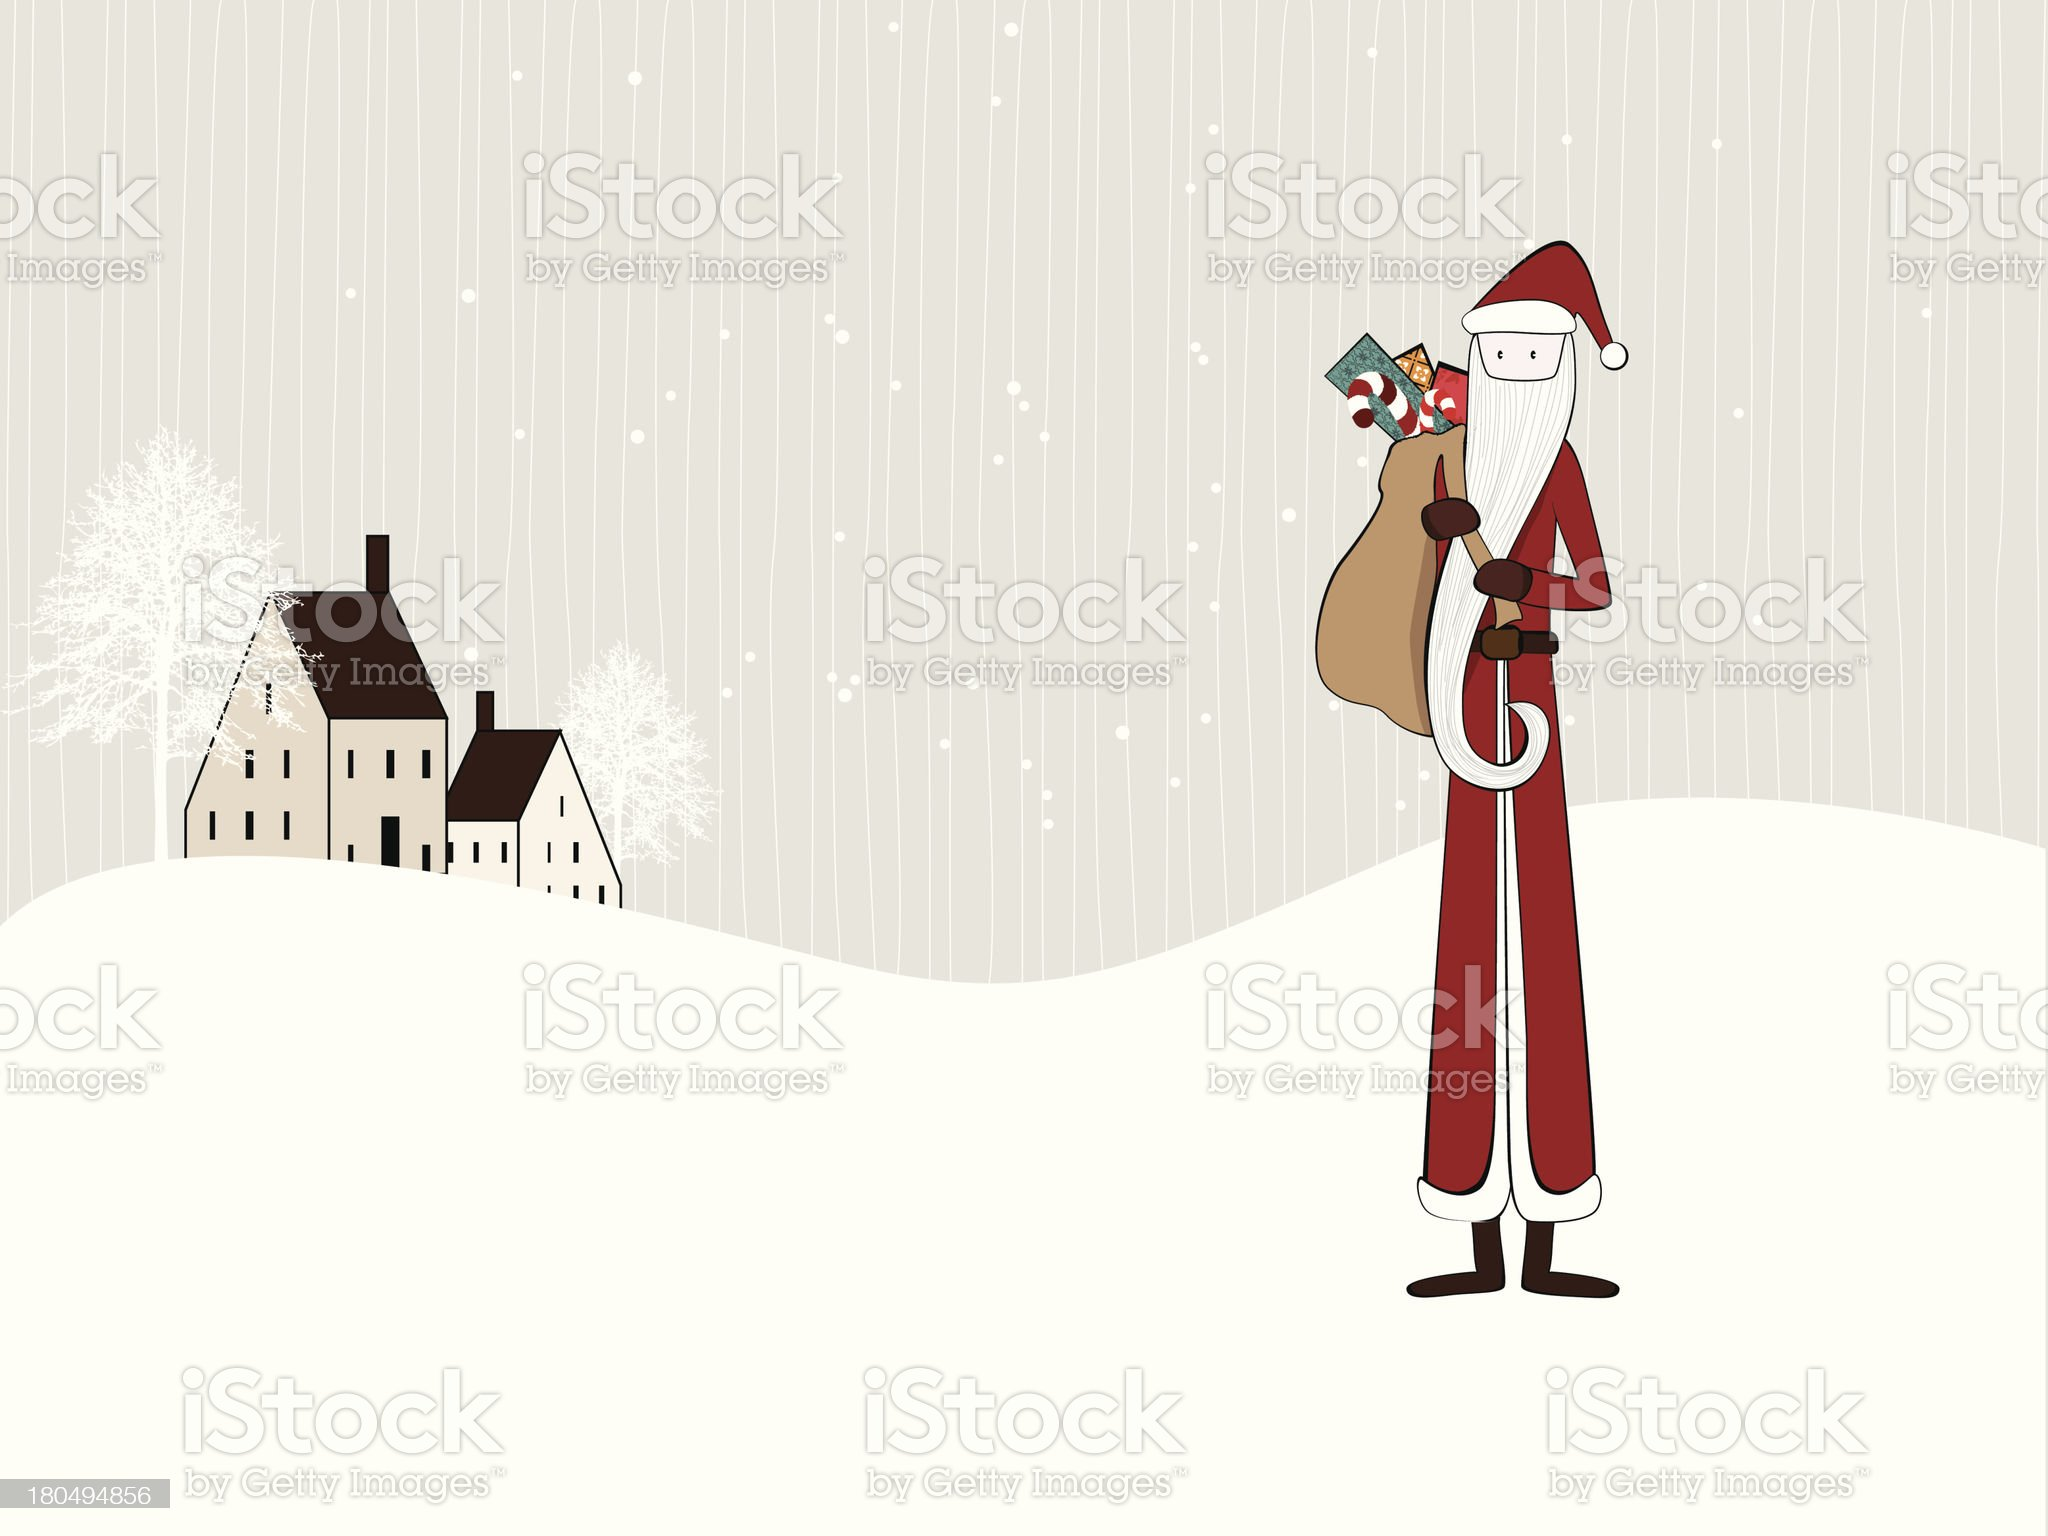 Slim Santa Claus with gifts royalty-free stock vector art